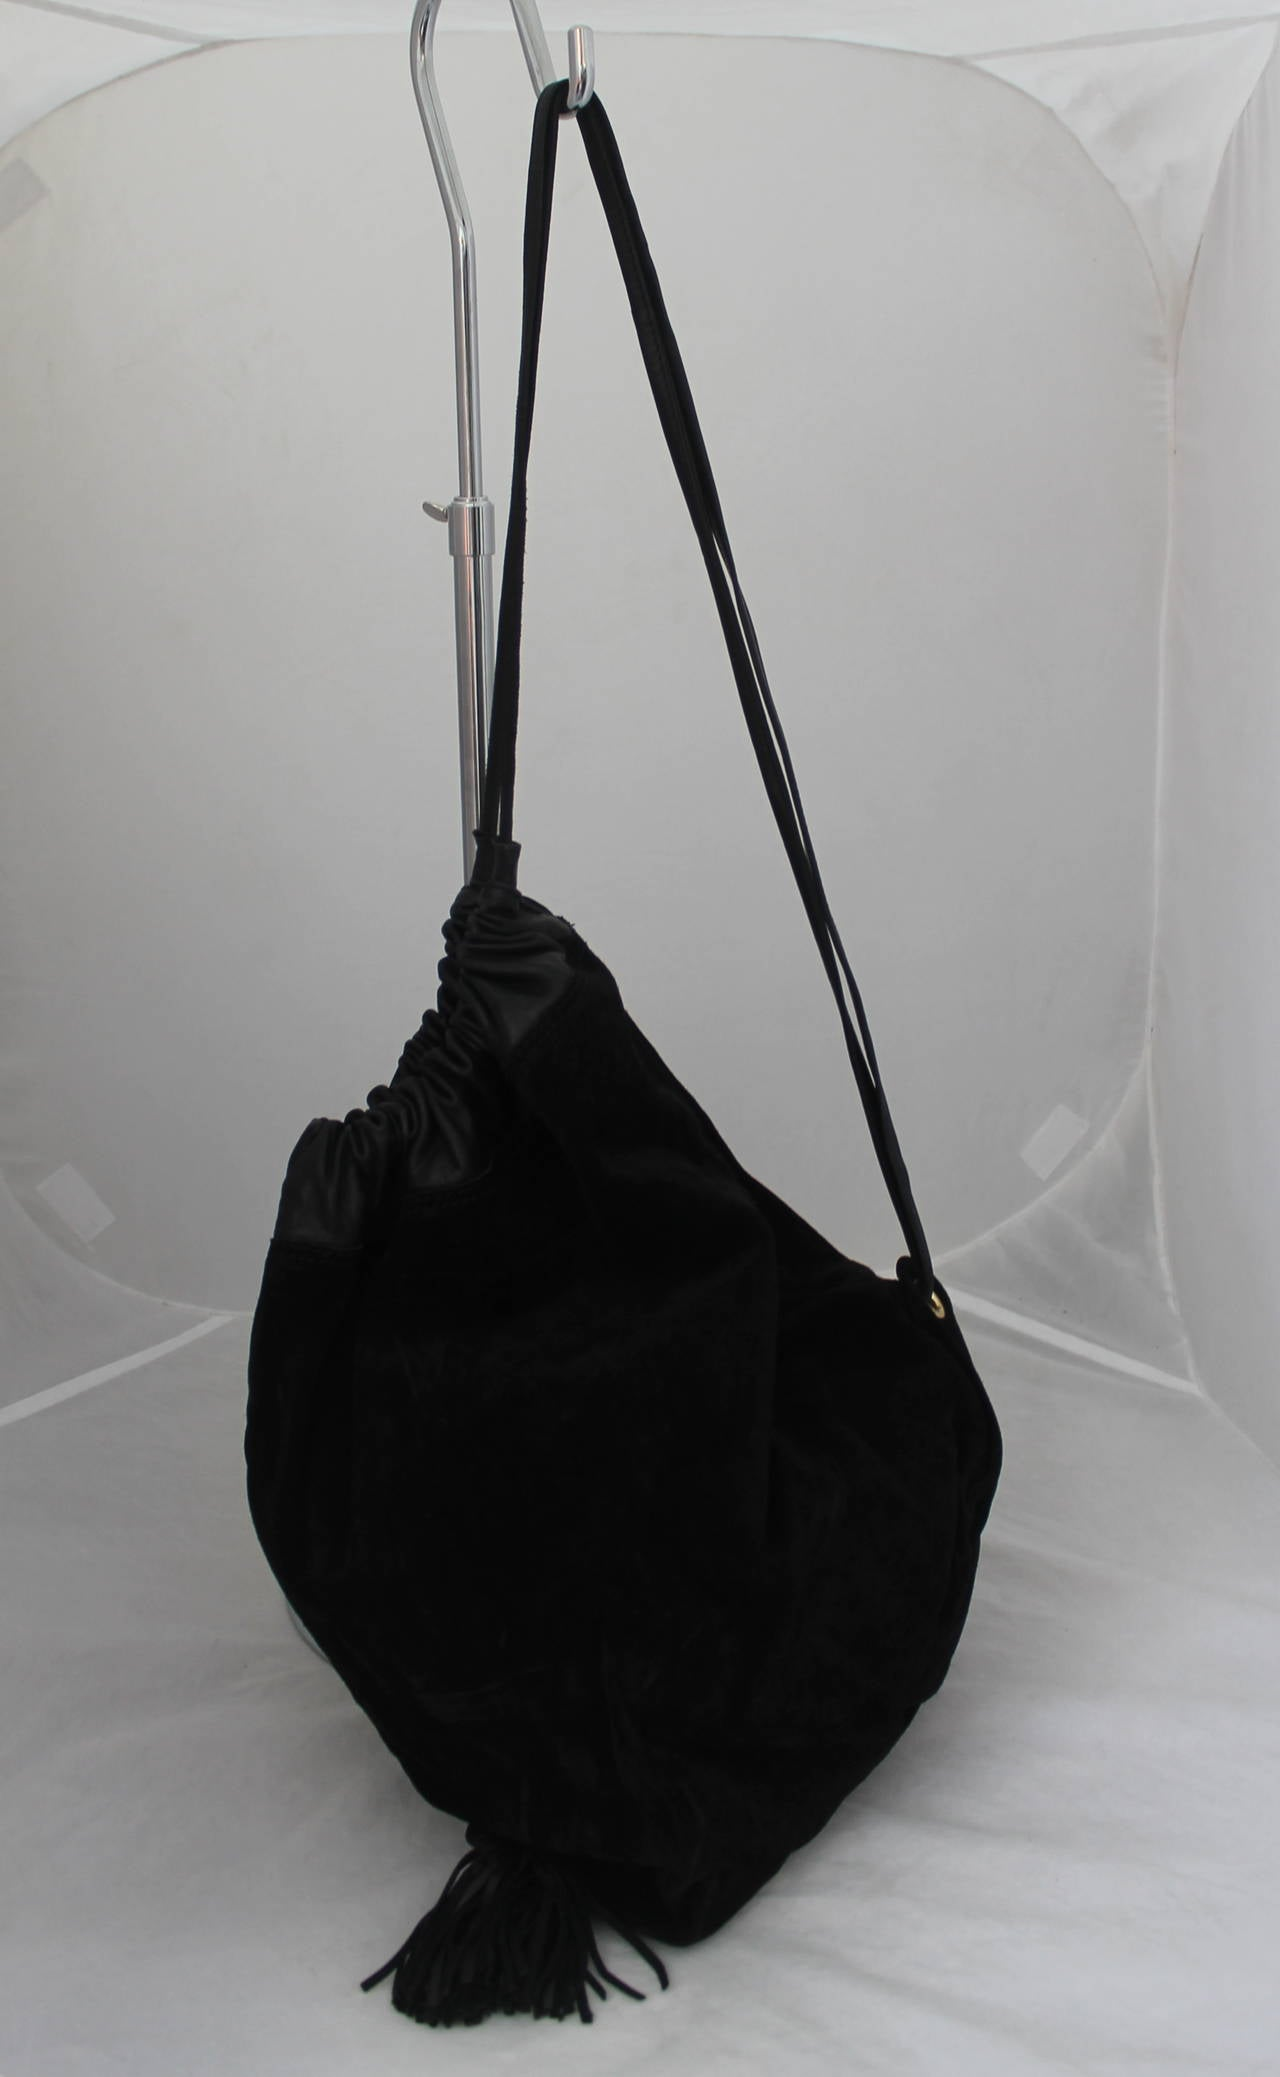 ... 1980s Bottega Veneta Black Suede and Leather Drawstring BackpackBag  with Fringe Detail and Leather size 40 ... 99e6a47436f69